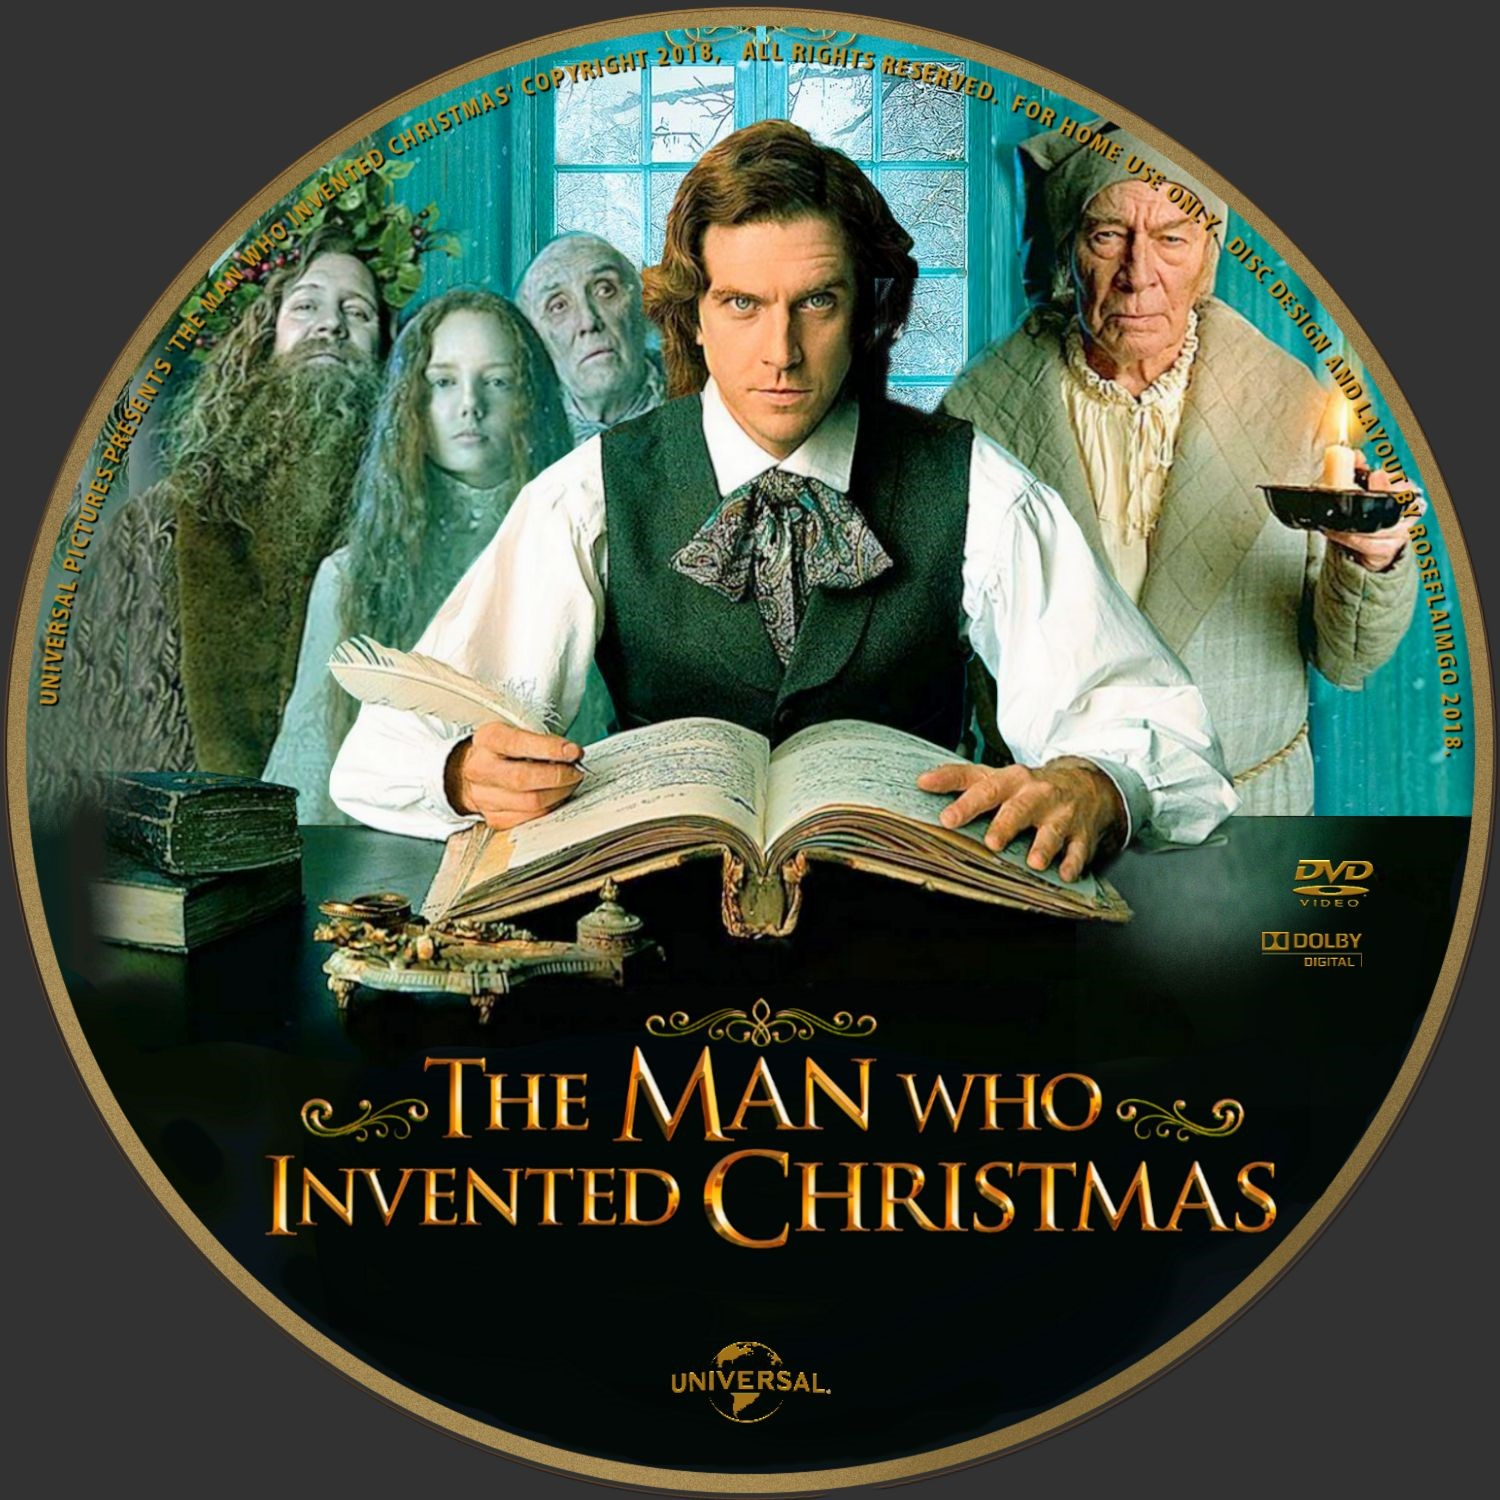 The Man Who Invented Christmas Dvd.The Man Who Invented Christmas Dvd Label Cover Addict